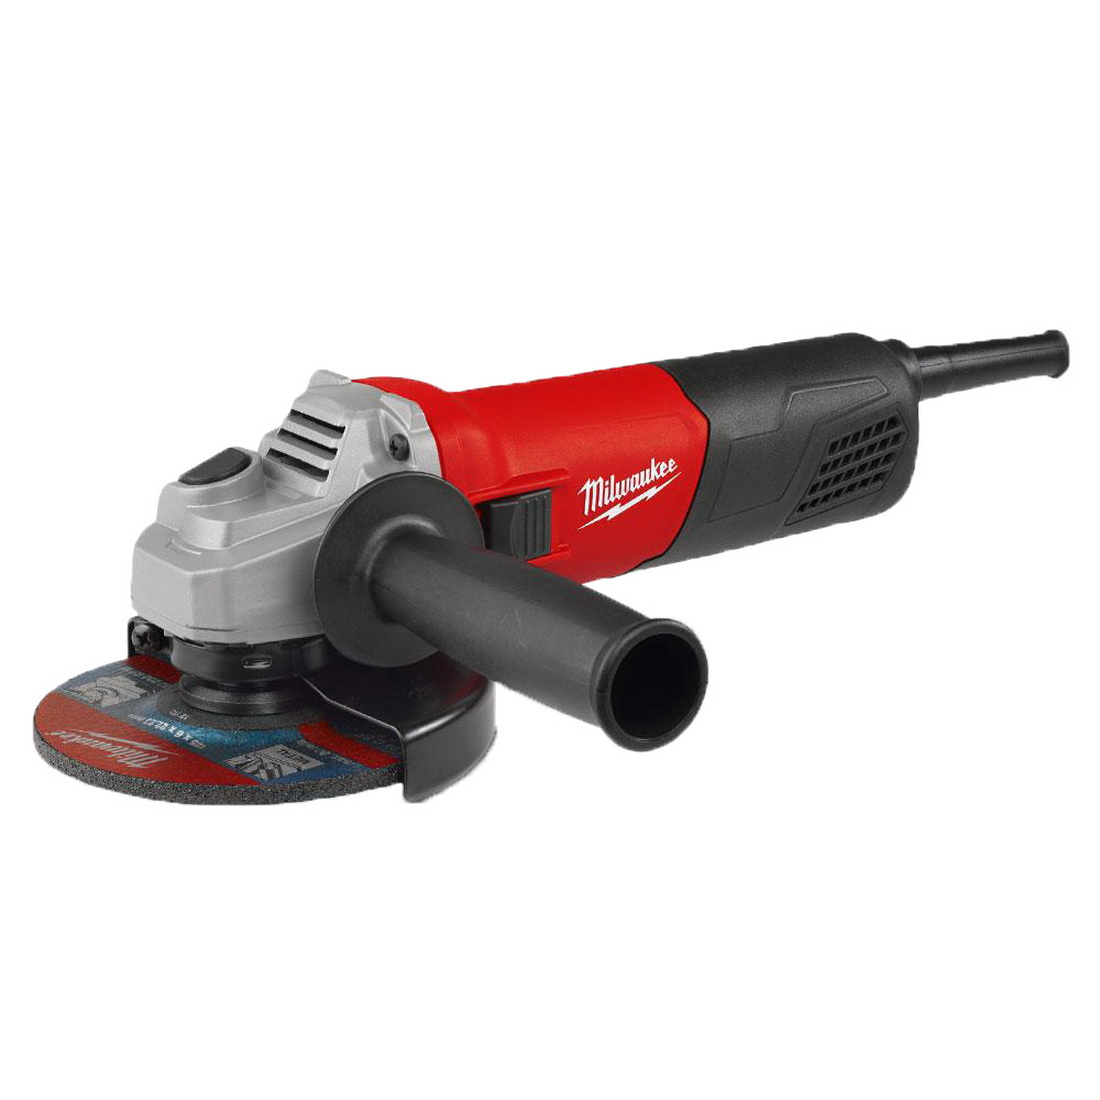 Angle Grinder 125mm 800W